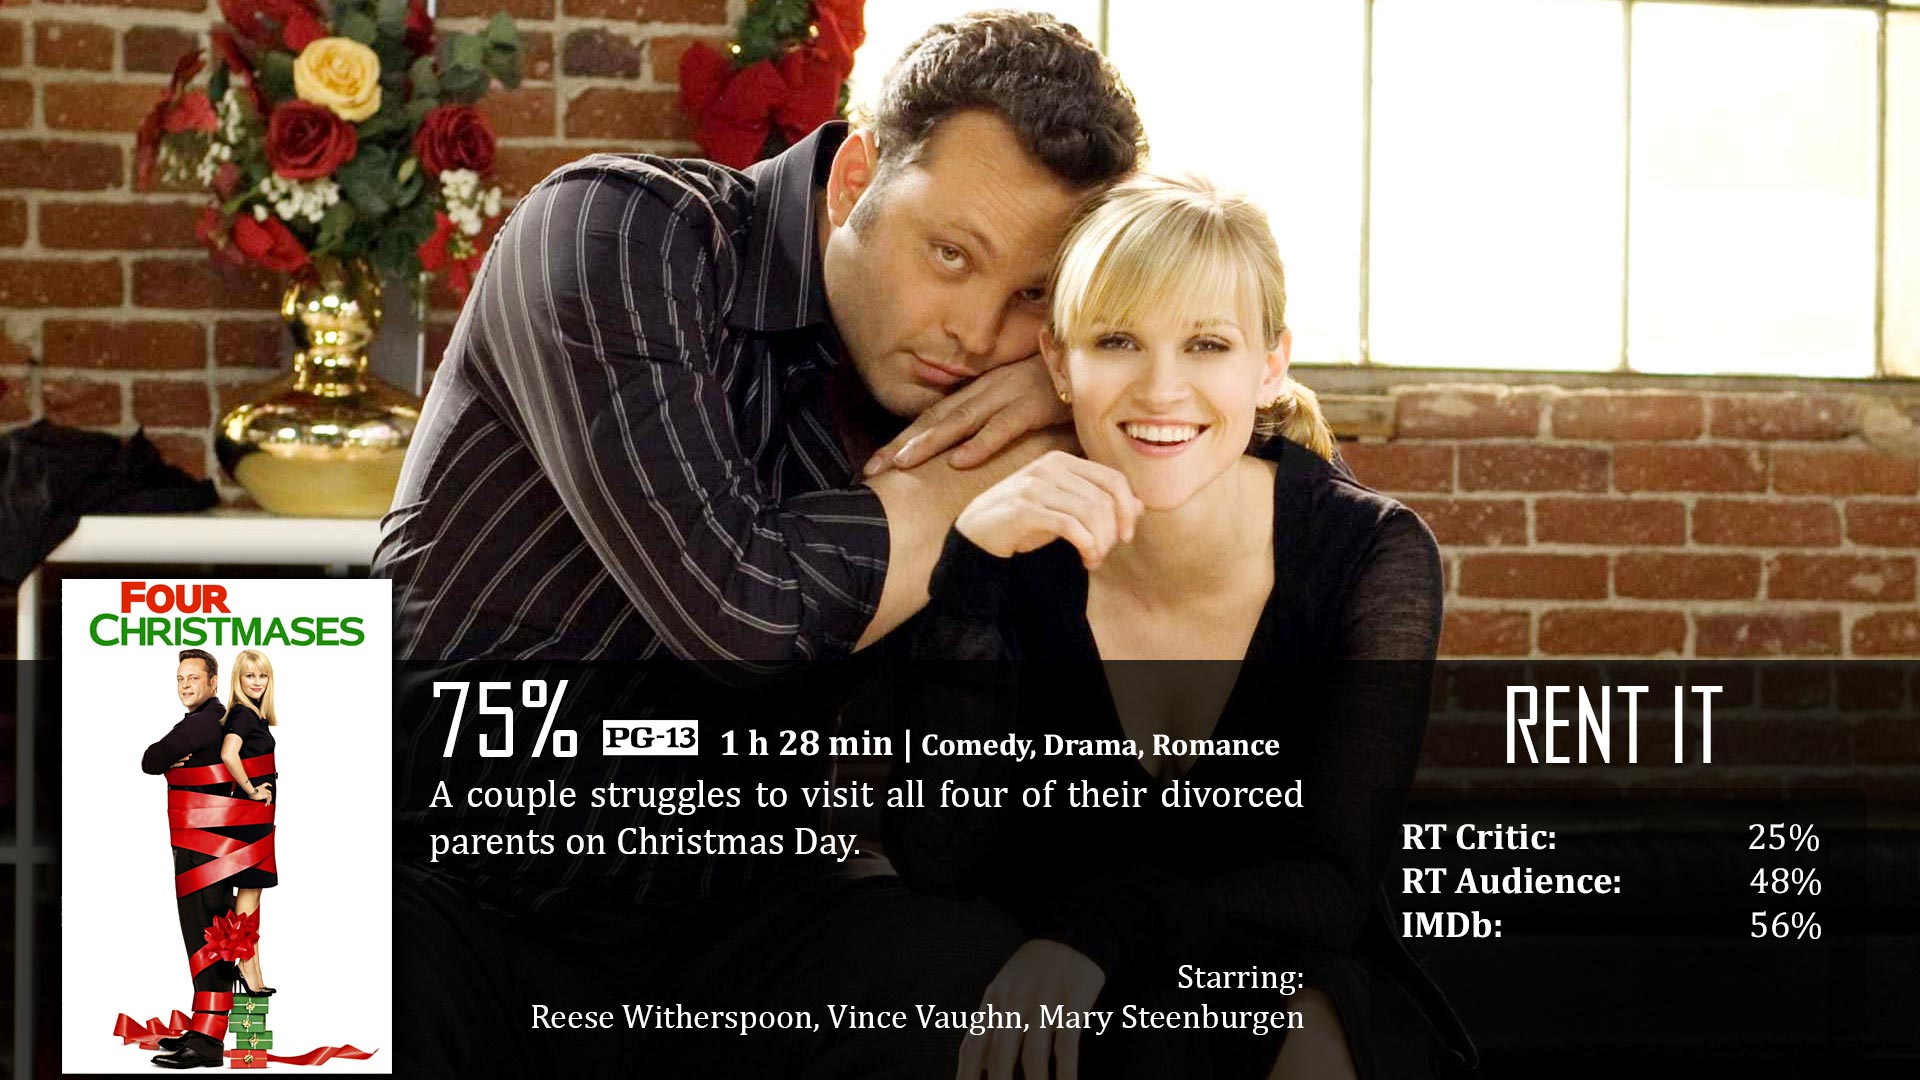 four christmases - Vince Vaughn Christmas Movie